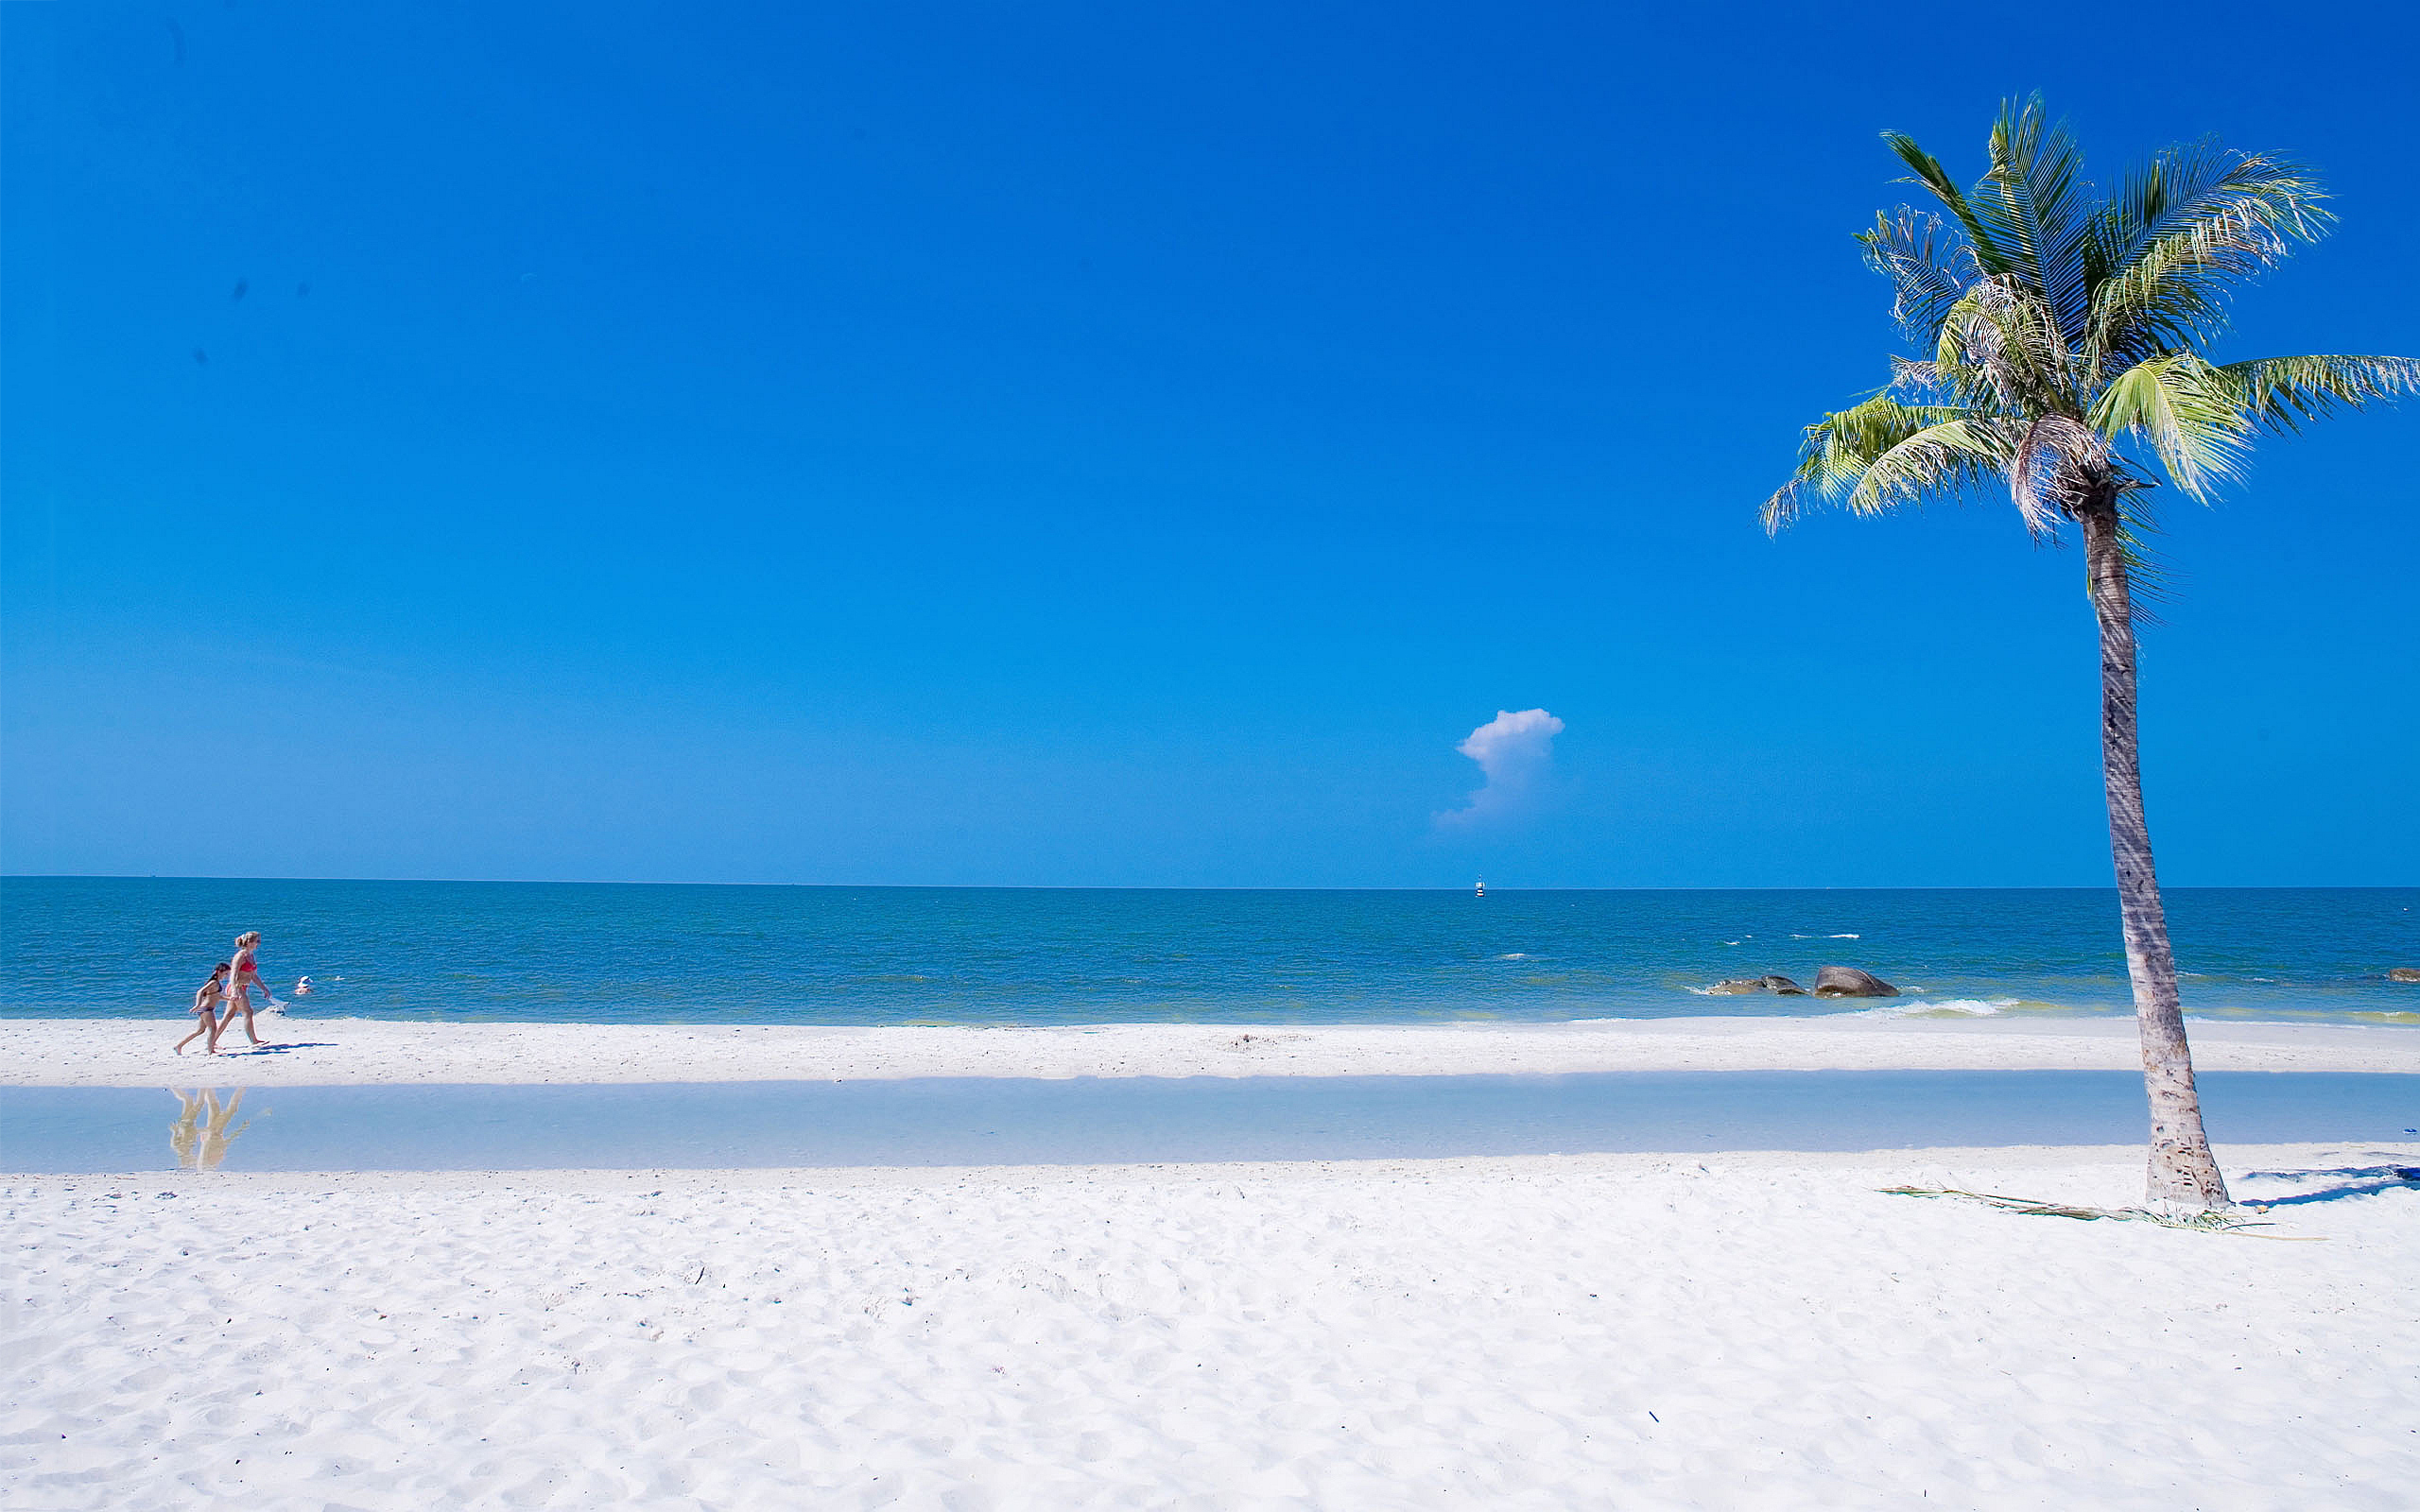 Beach Summer Ocean Wallpaper Full HD ImageBankbiz 2560x1600